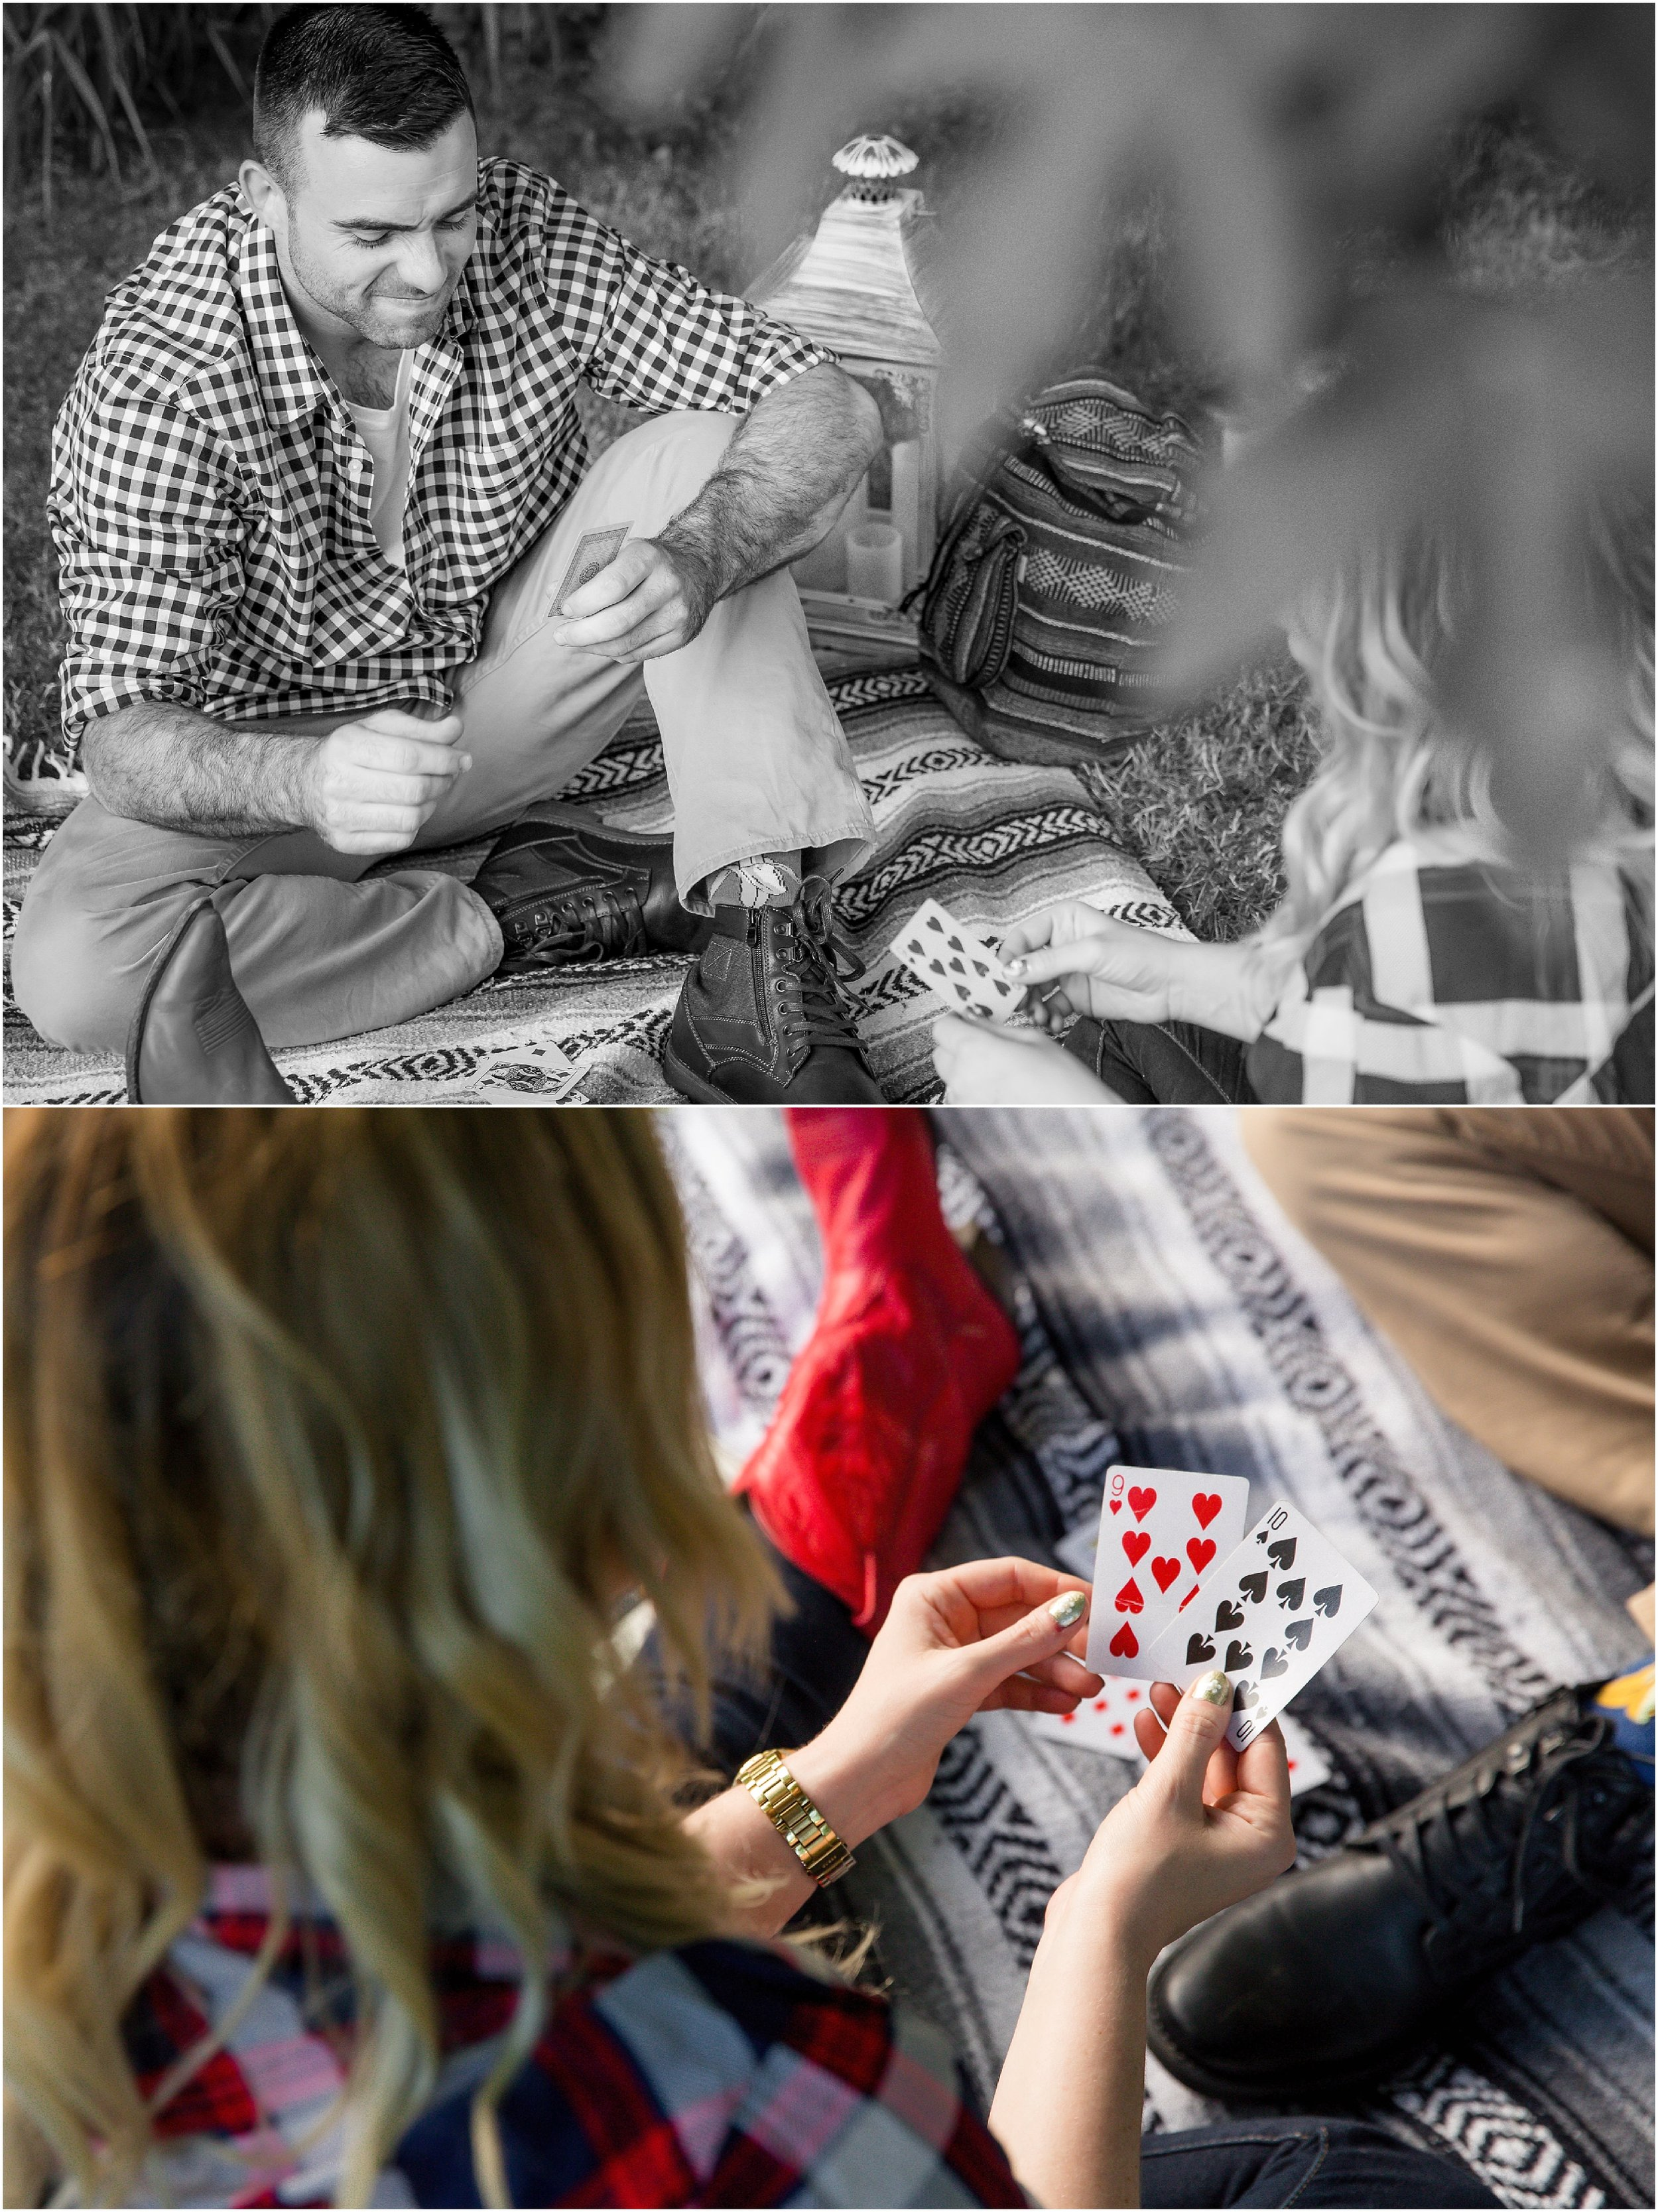 Amazing Day Photography - Camping Engagement Session - Langley Photographer - Langley Engagement Photographer - Langley Wedding Photographer (5).jpg